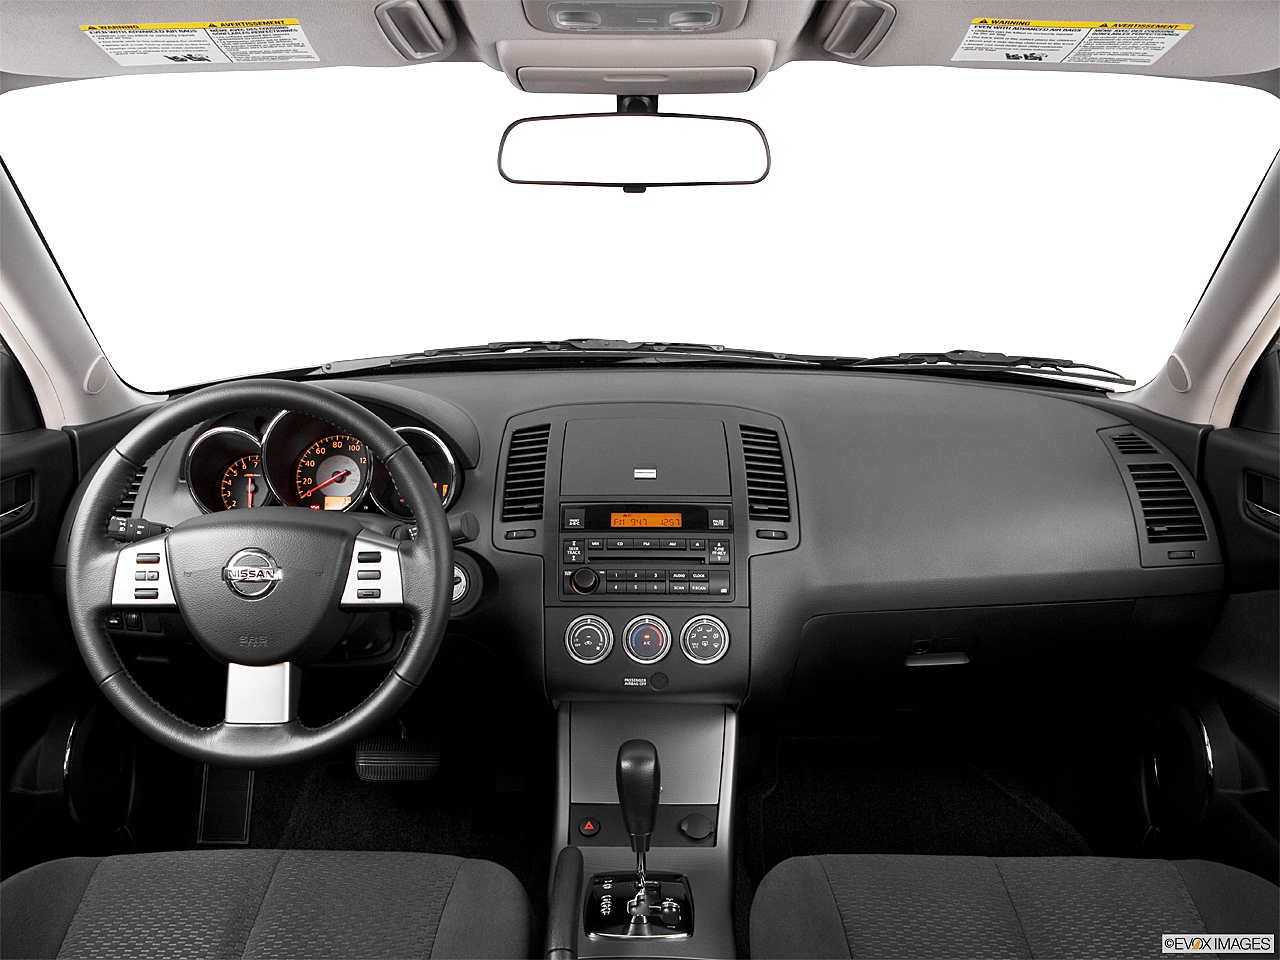 2006 Nissan Altima 3.5 SE, centered wide dash shot